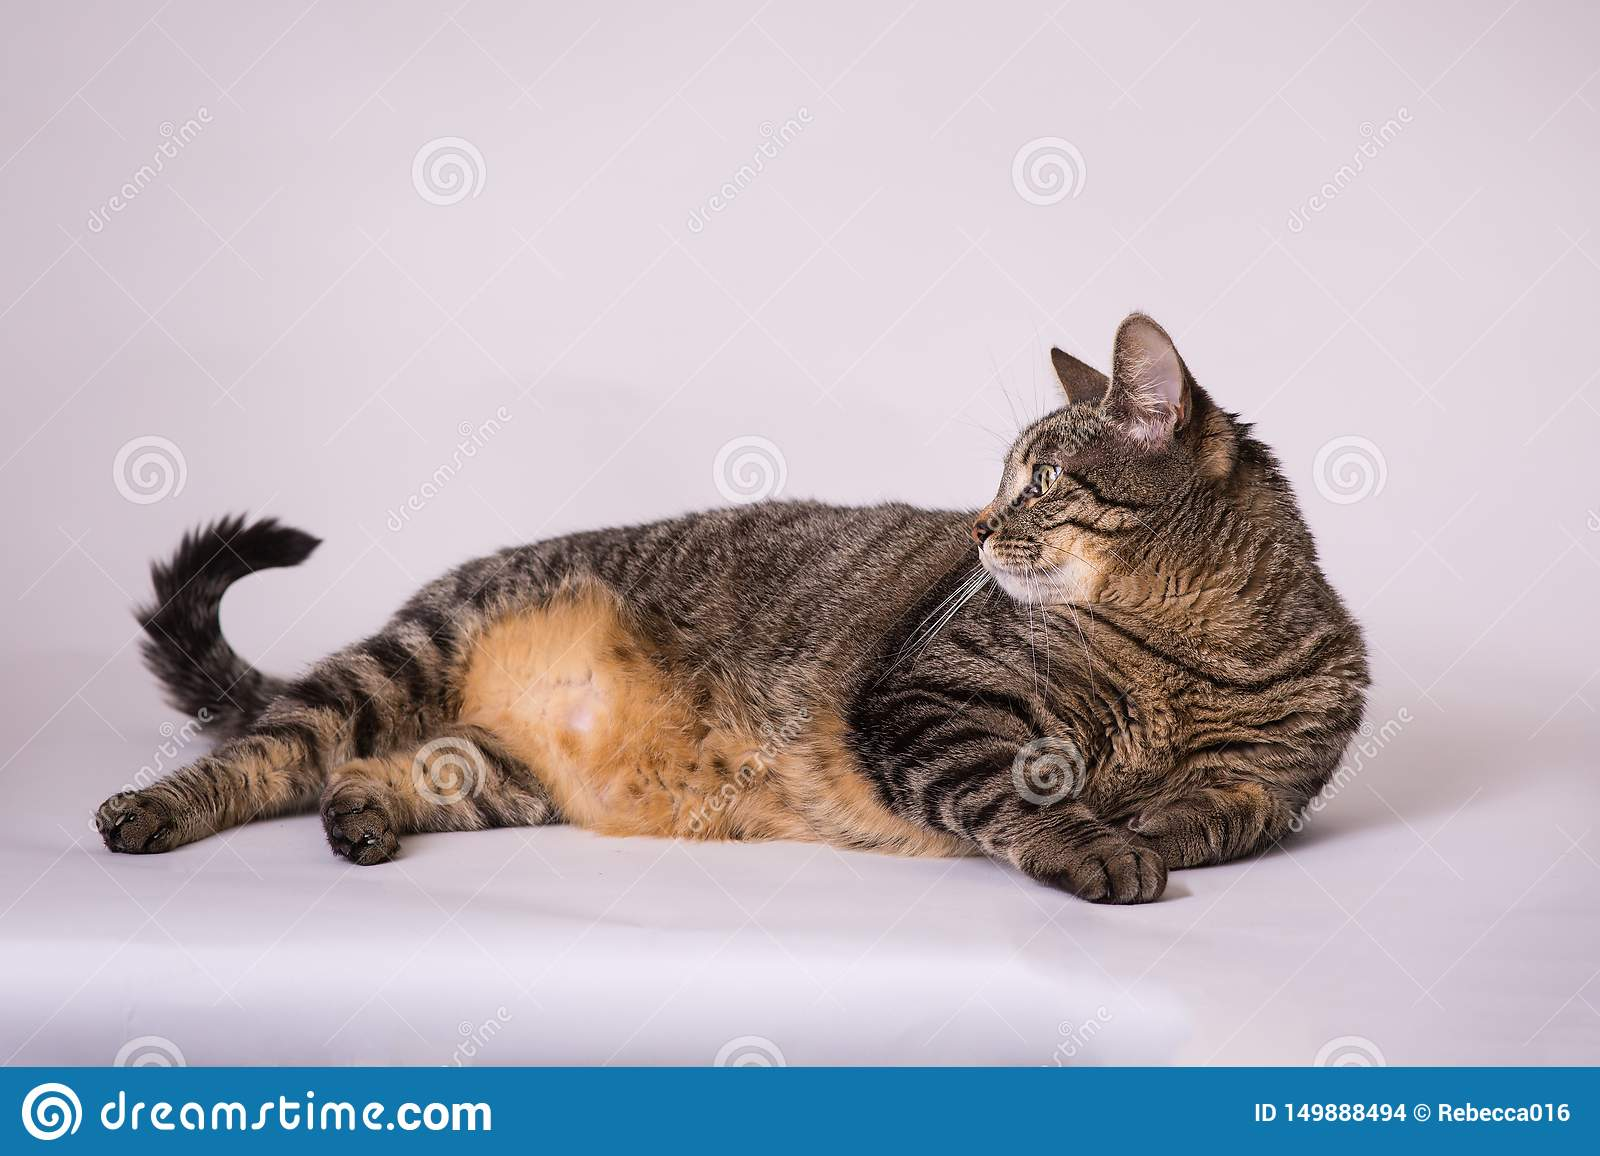 Domestic house cat laying down head up looking at curled tail